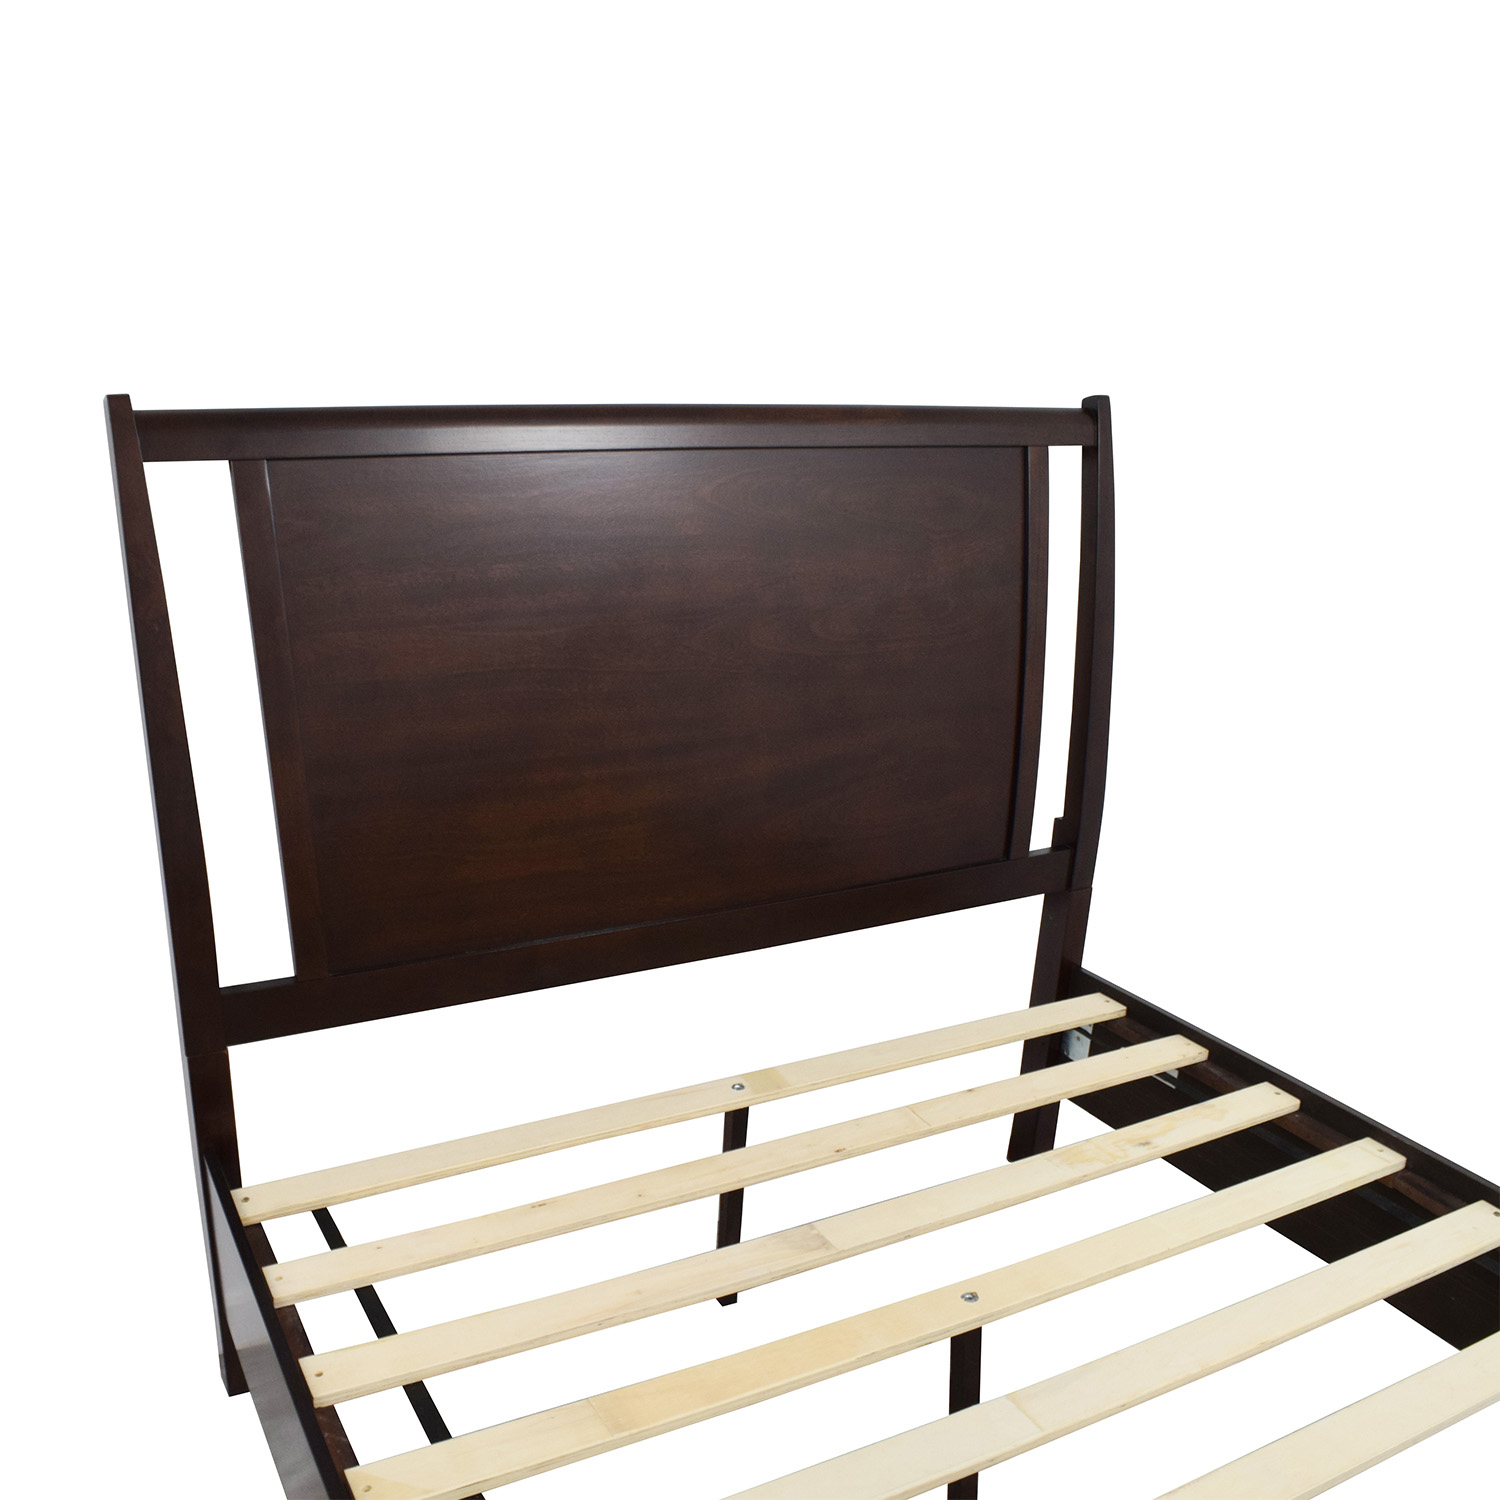 55 OFF Bobs Furniture Bobs Furniture Wooden Queen